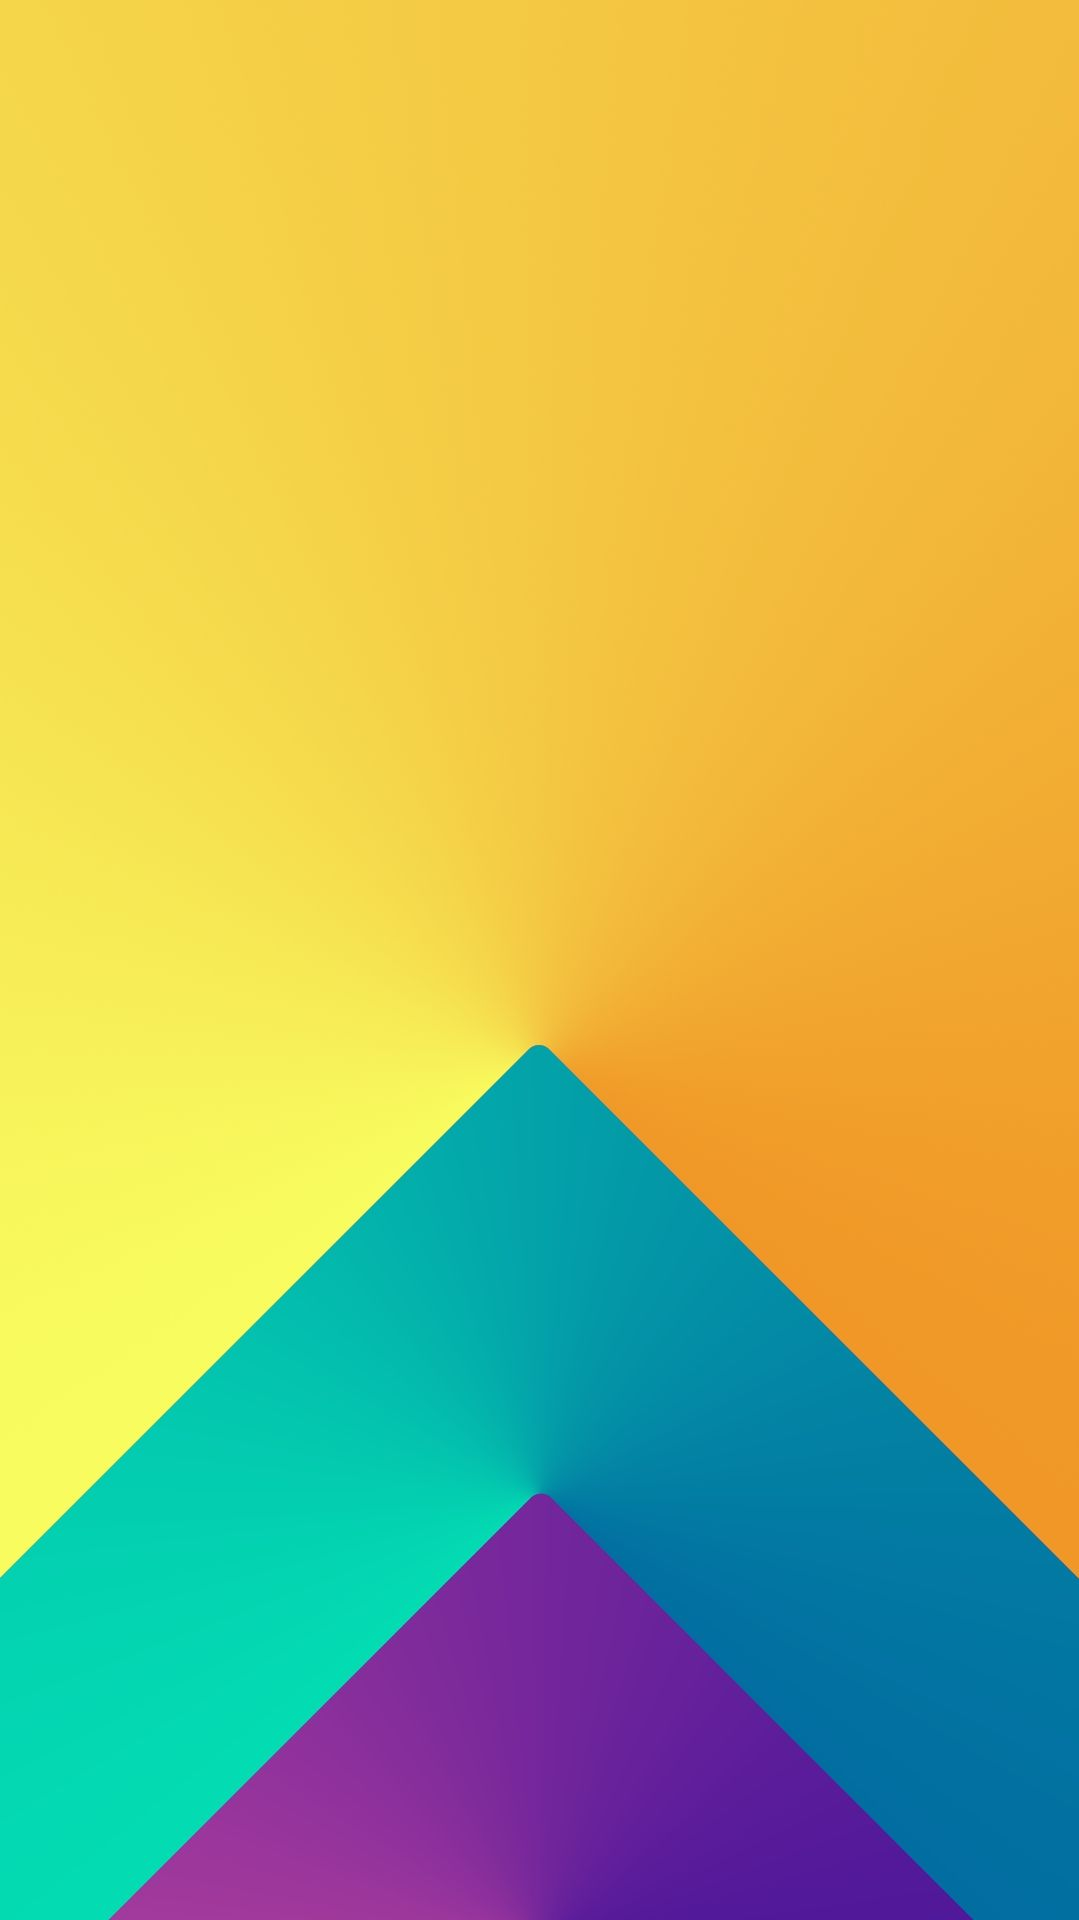 3D-Triangle-Colors-iPhone-Wallpaper | iPhone Wallpapers | Pinterest ...